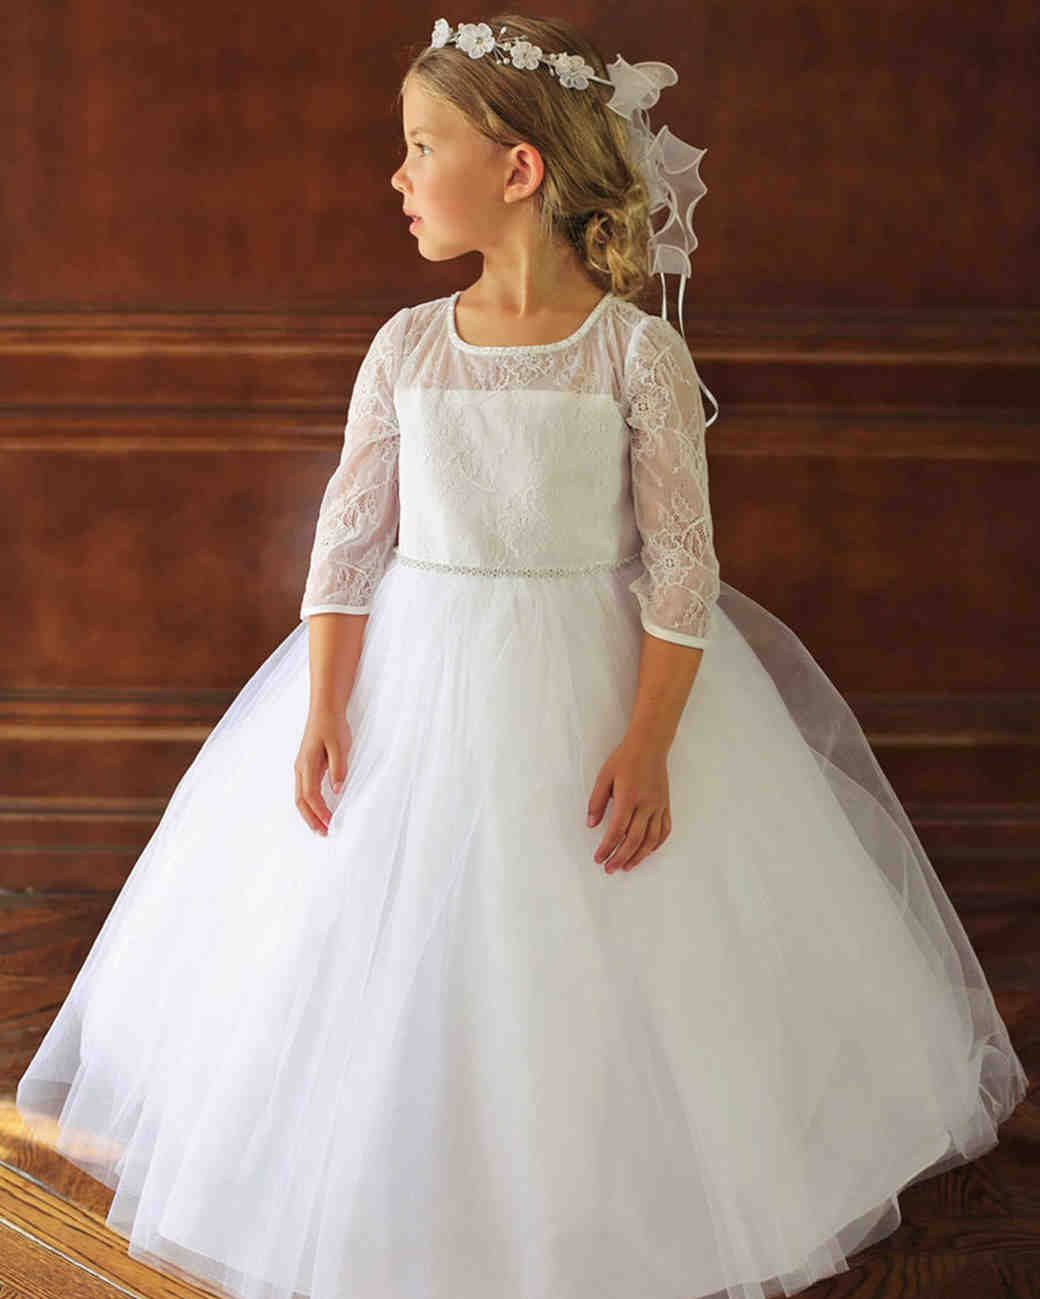 8b0498faed4 The Sweetest Long-Sleeve Dresses for Flower Girls